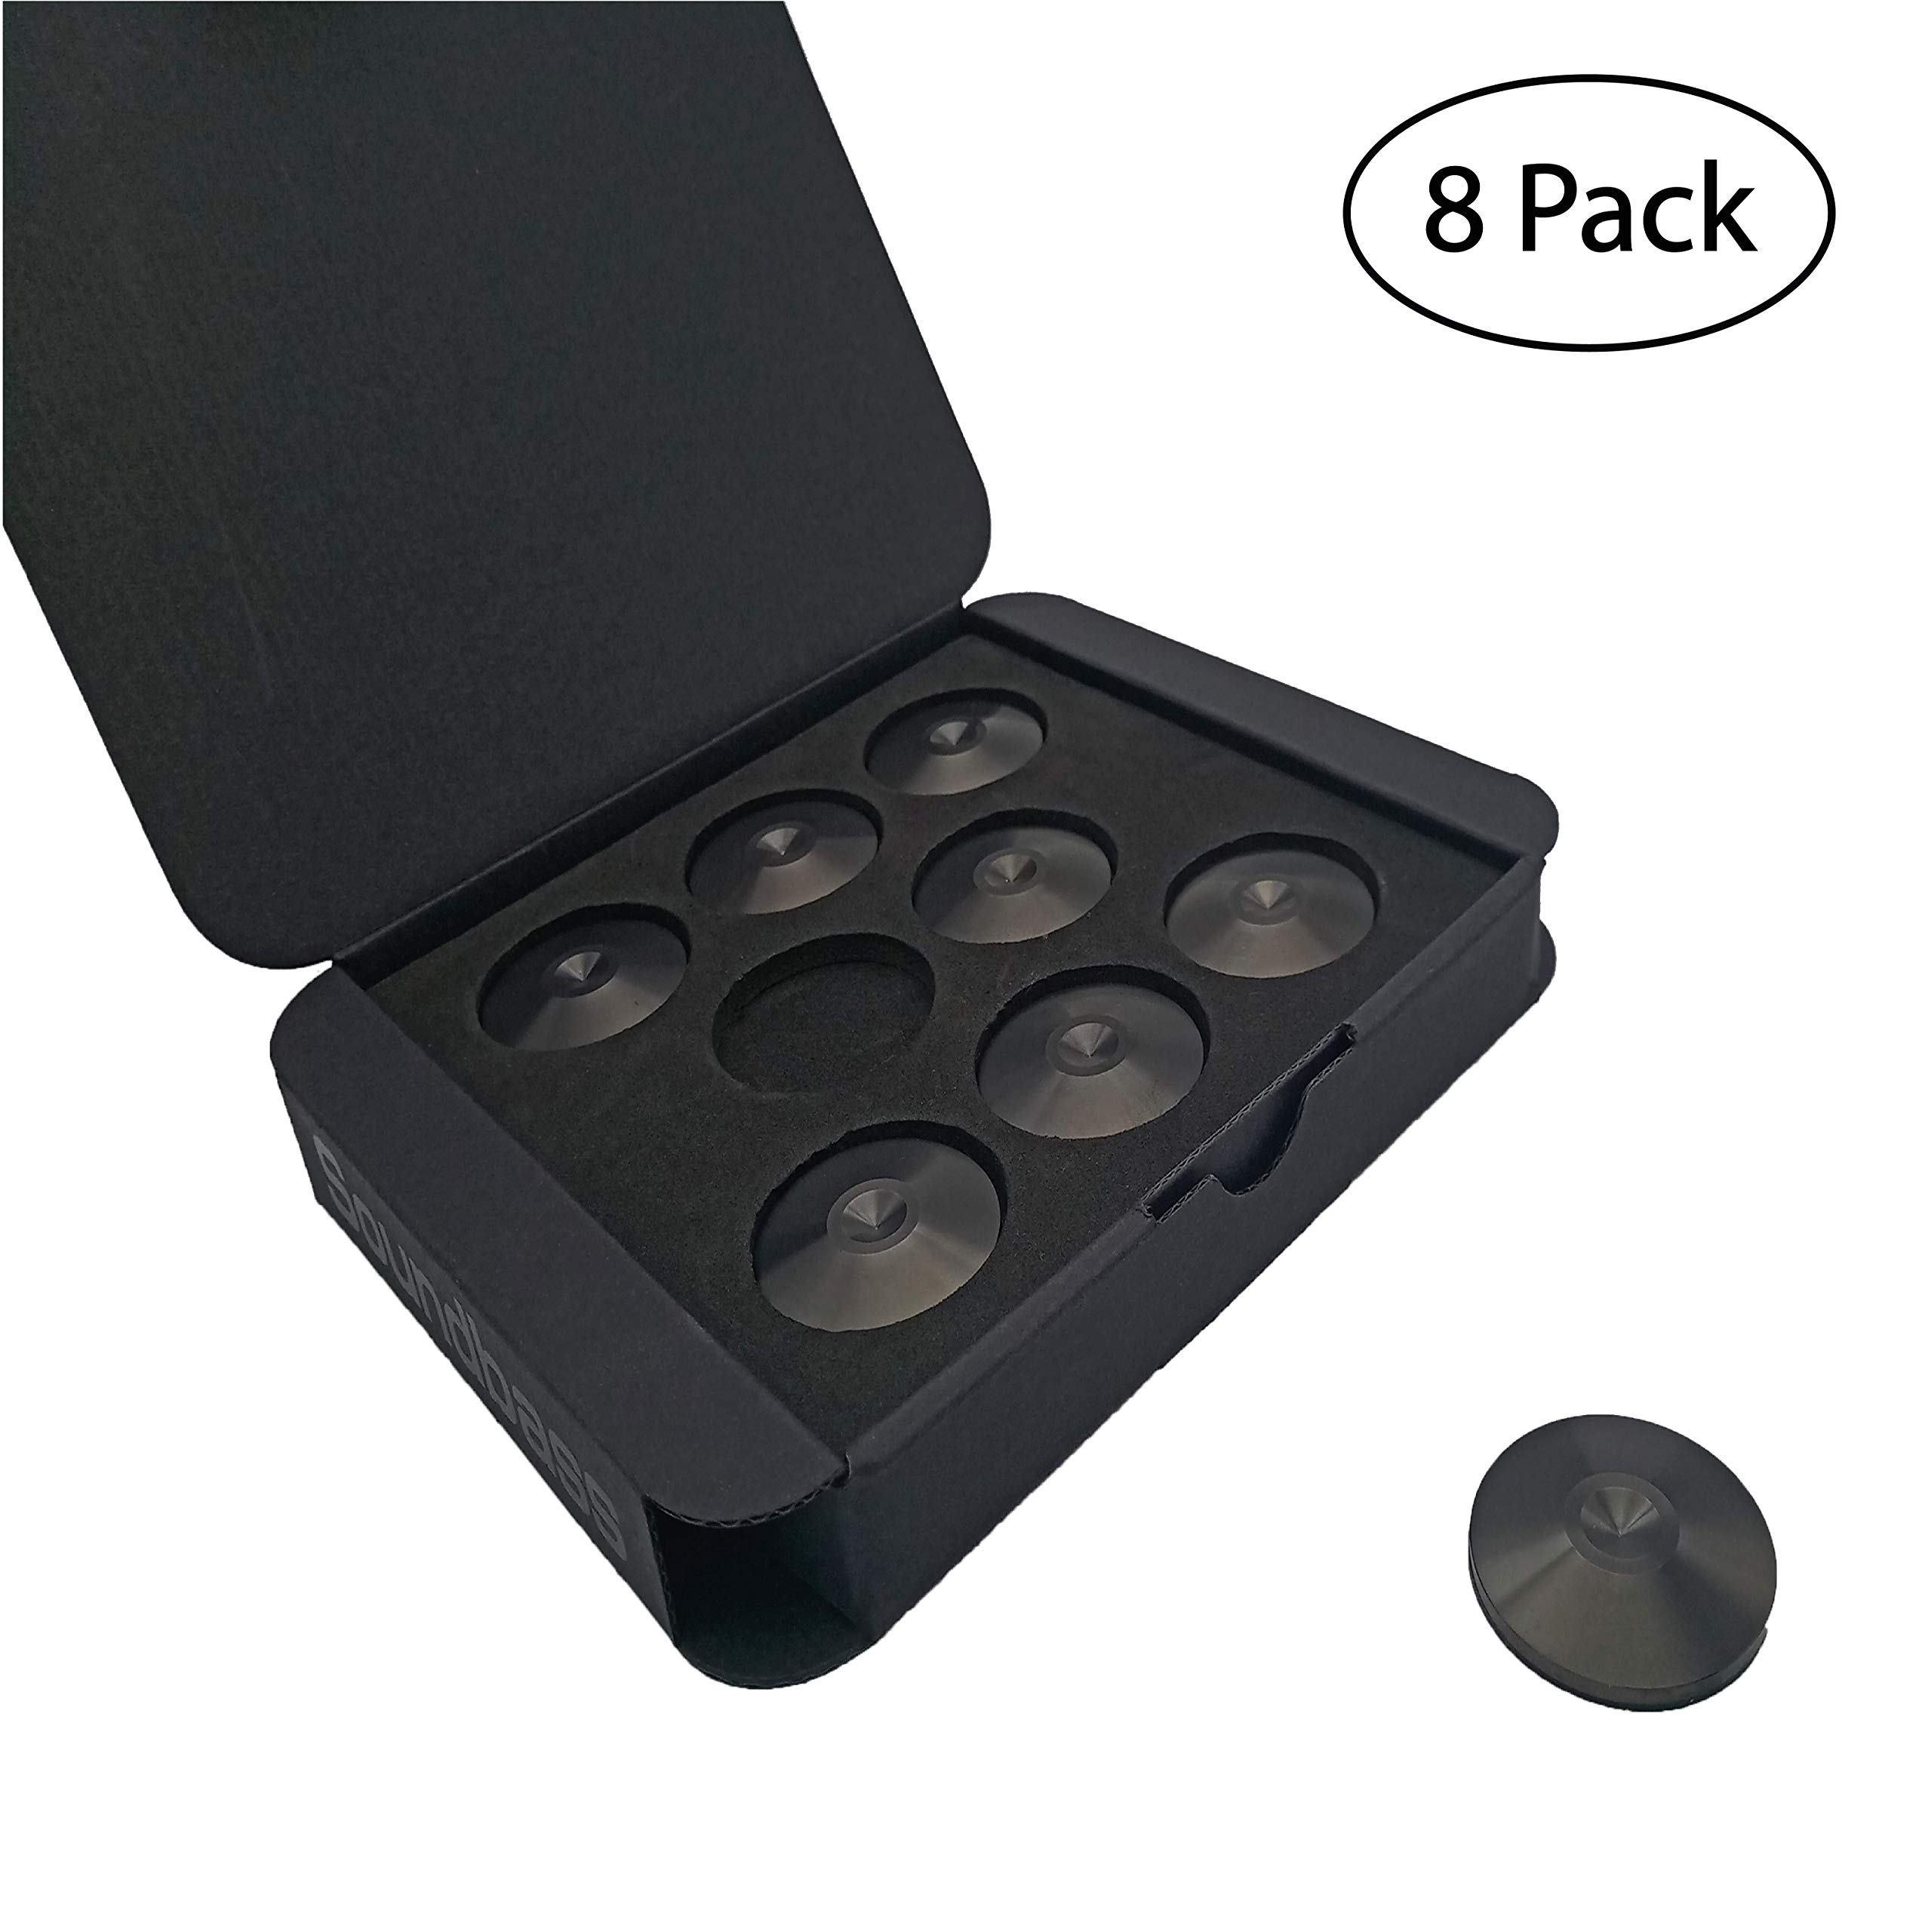 Set of 8 Satin Black Hi-Fi Spike Shoes Isolation Pads by Soundbass